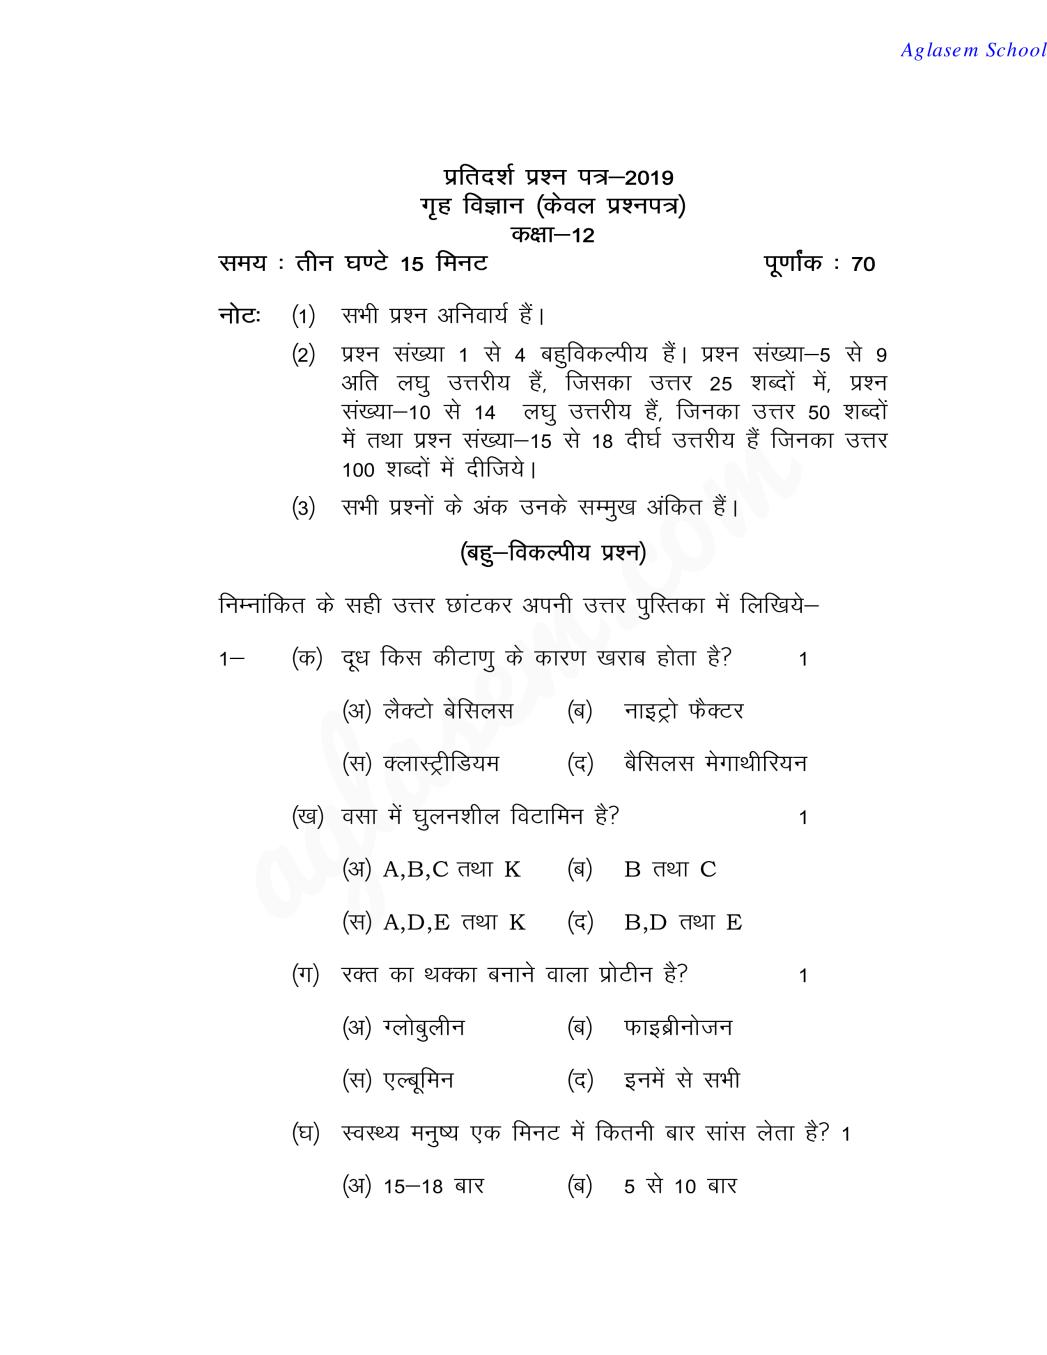 UP Board Model Paper 2020 Class 12th – Home Science